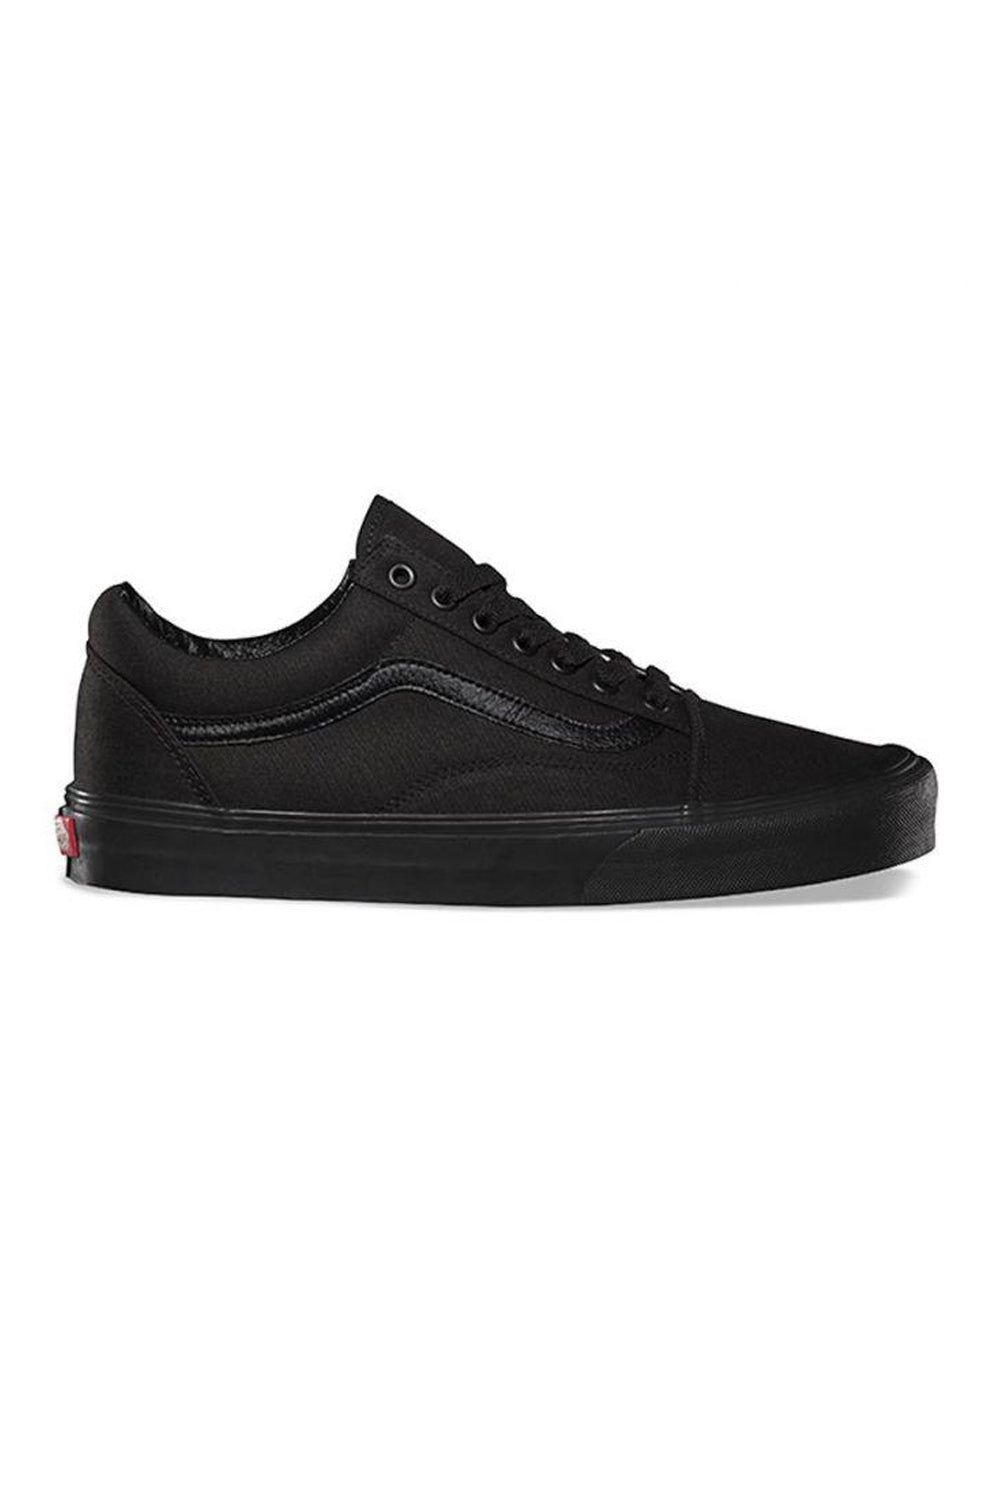 Vans Old Skool Black / Black Shoe